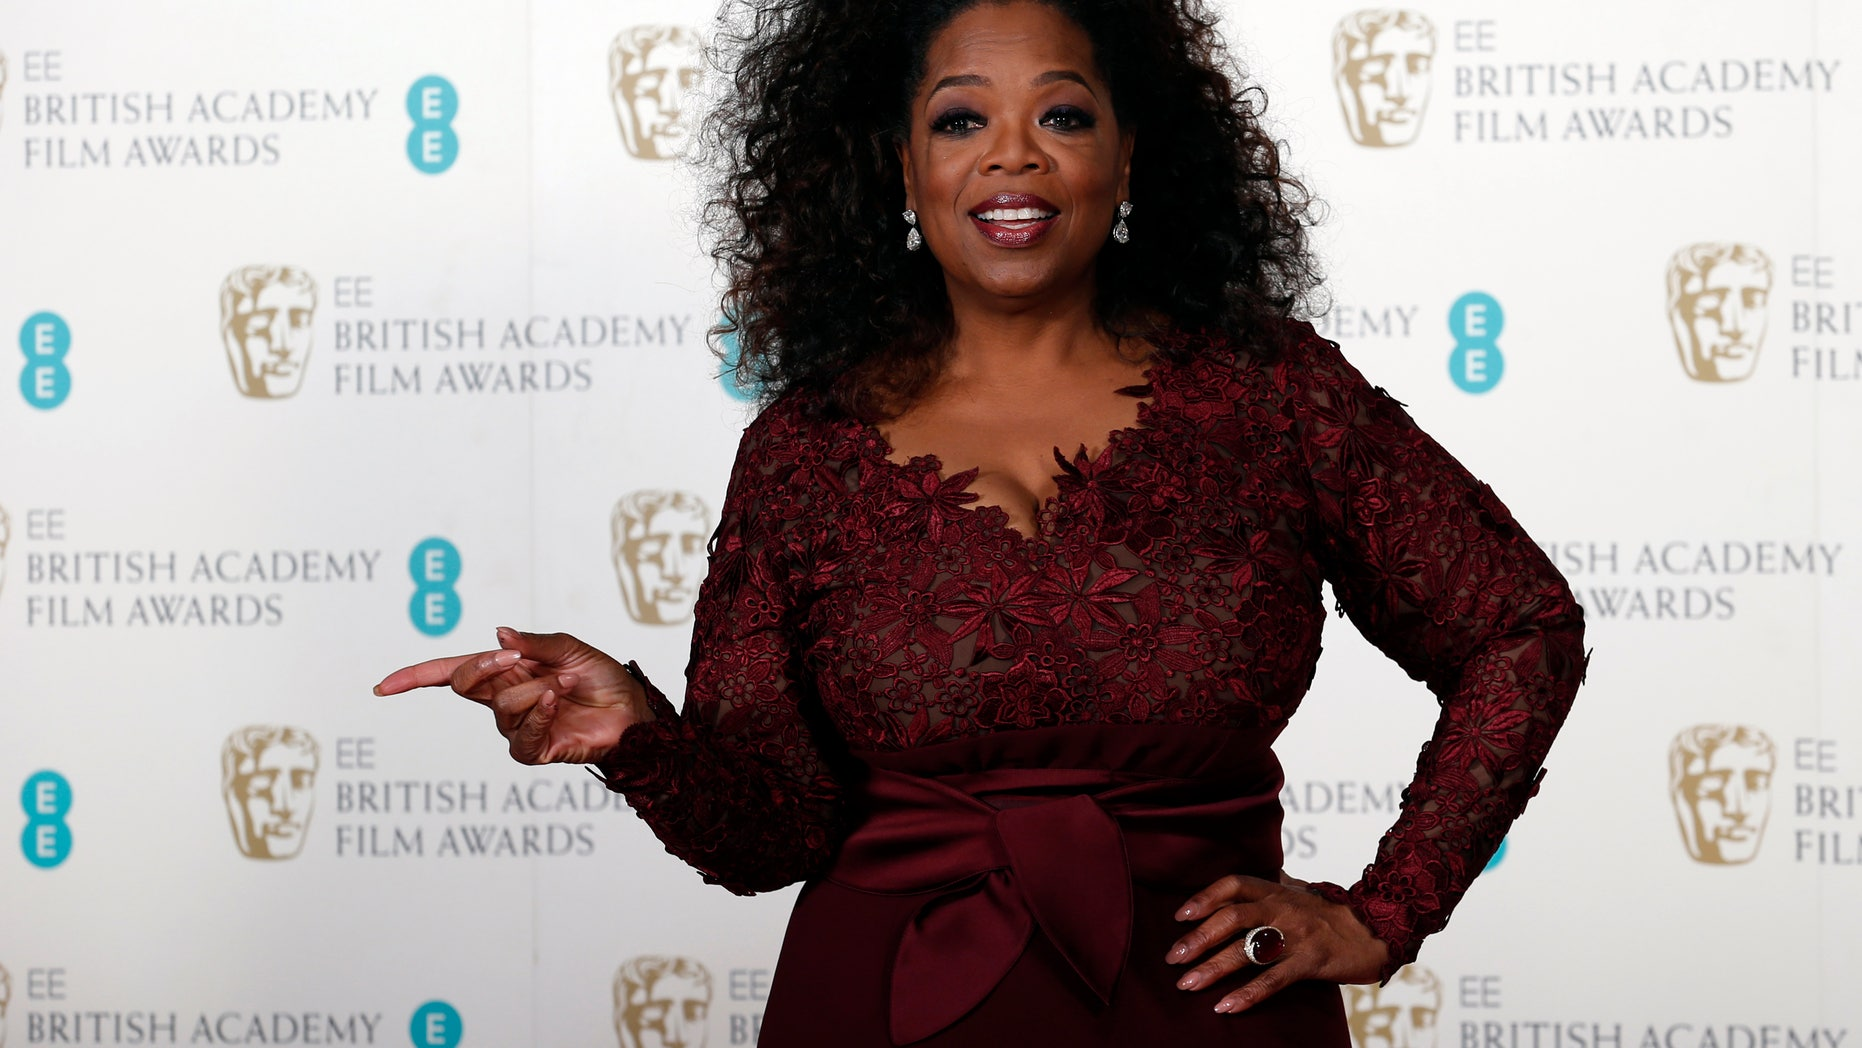 February 16, 2014. Oprah Winfrey poses at the British Academy of Film and Arts (BAFTA) awards ceremony at the Royal Opera House in London.